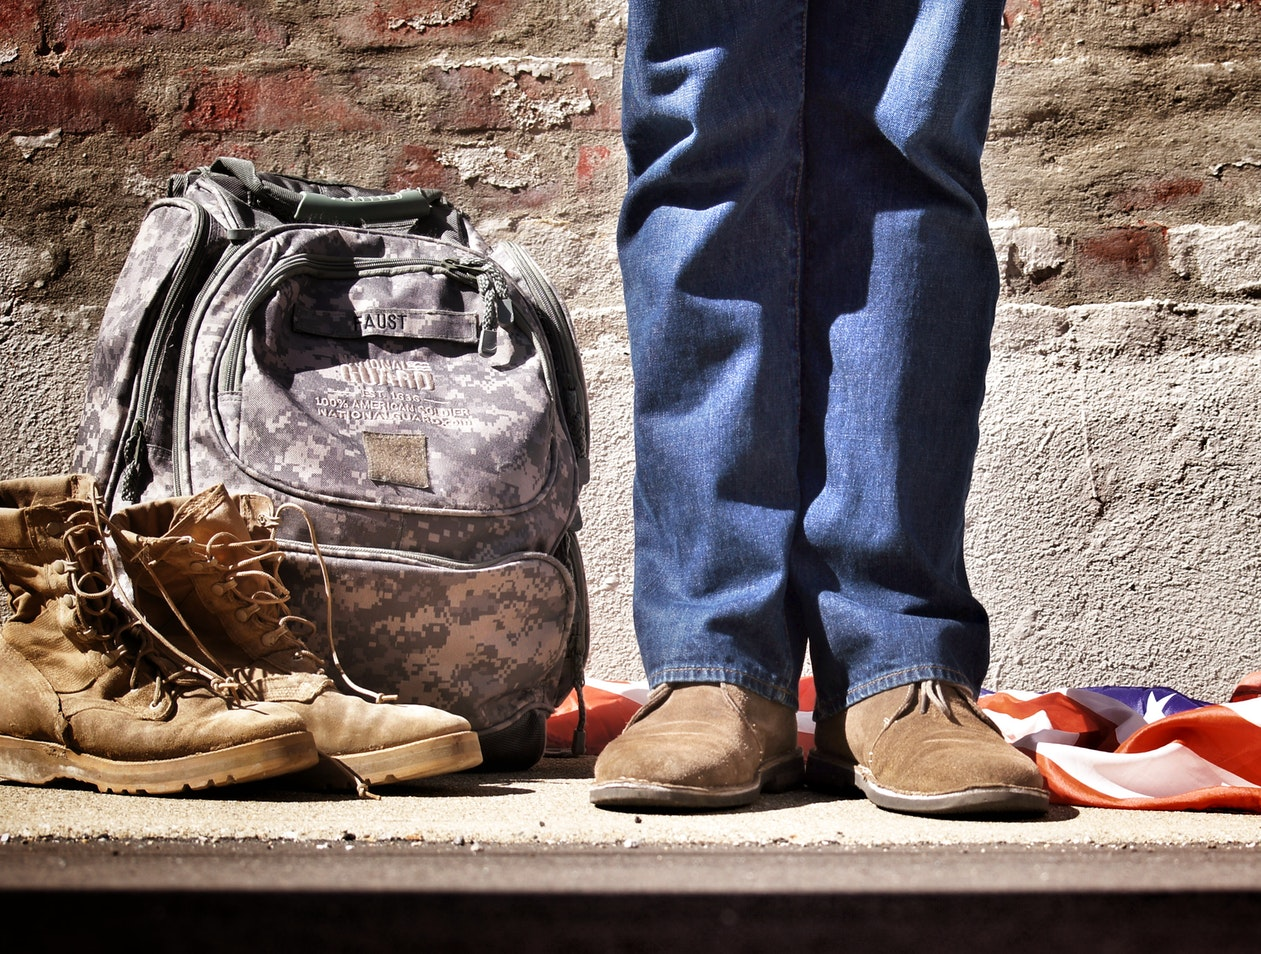 A veteran with his boots and backpack on the floor